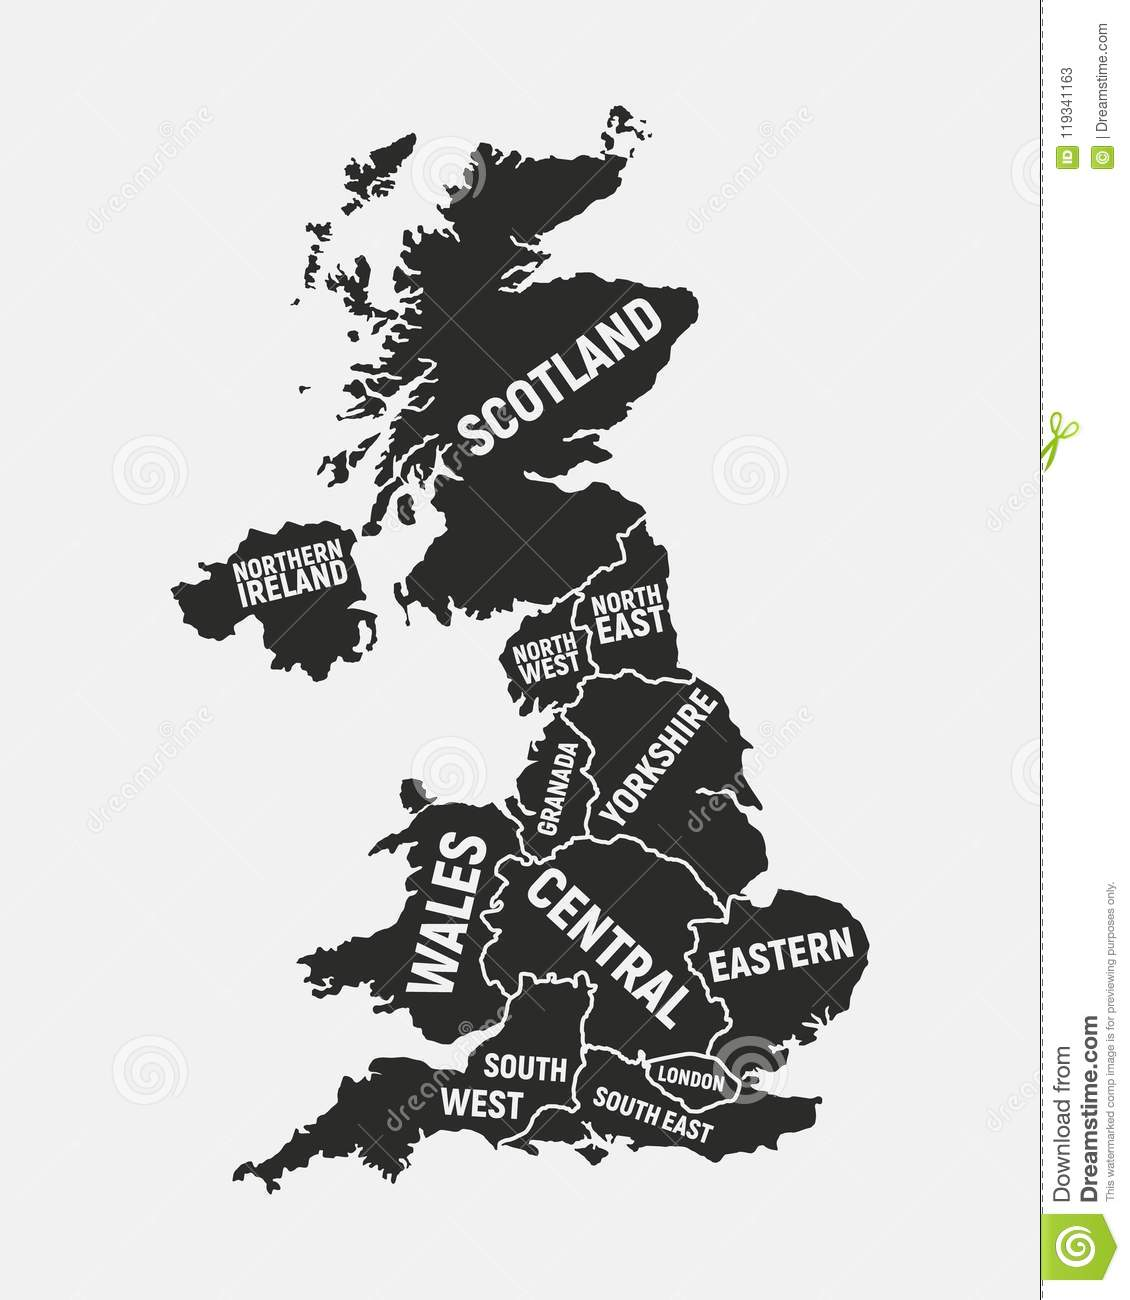 United Kingdom Map  Poster Map Of UK With Country And Regions Names